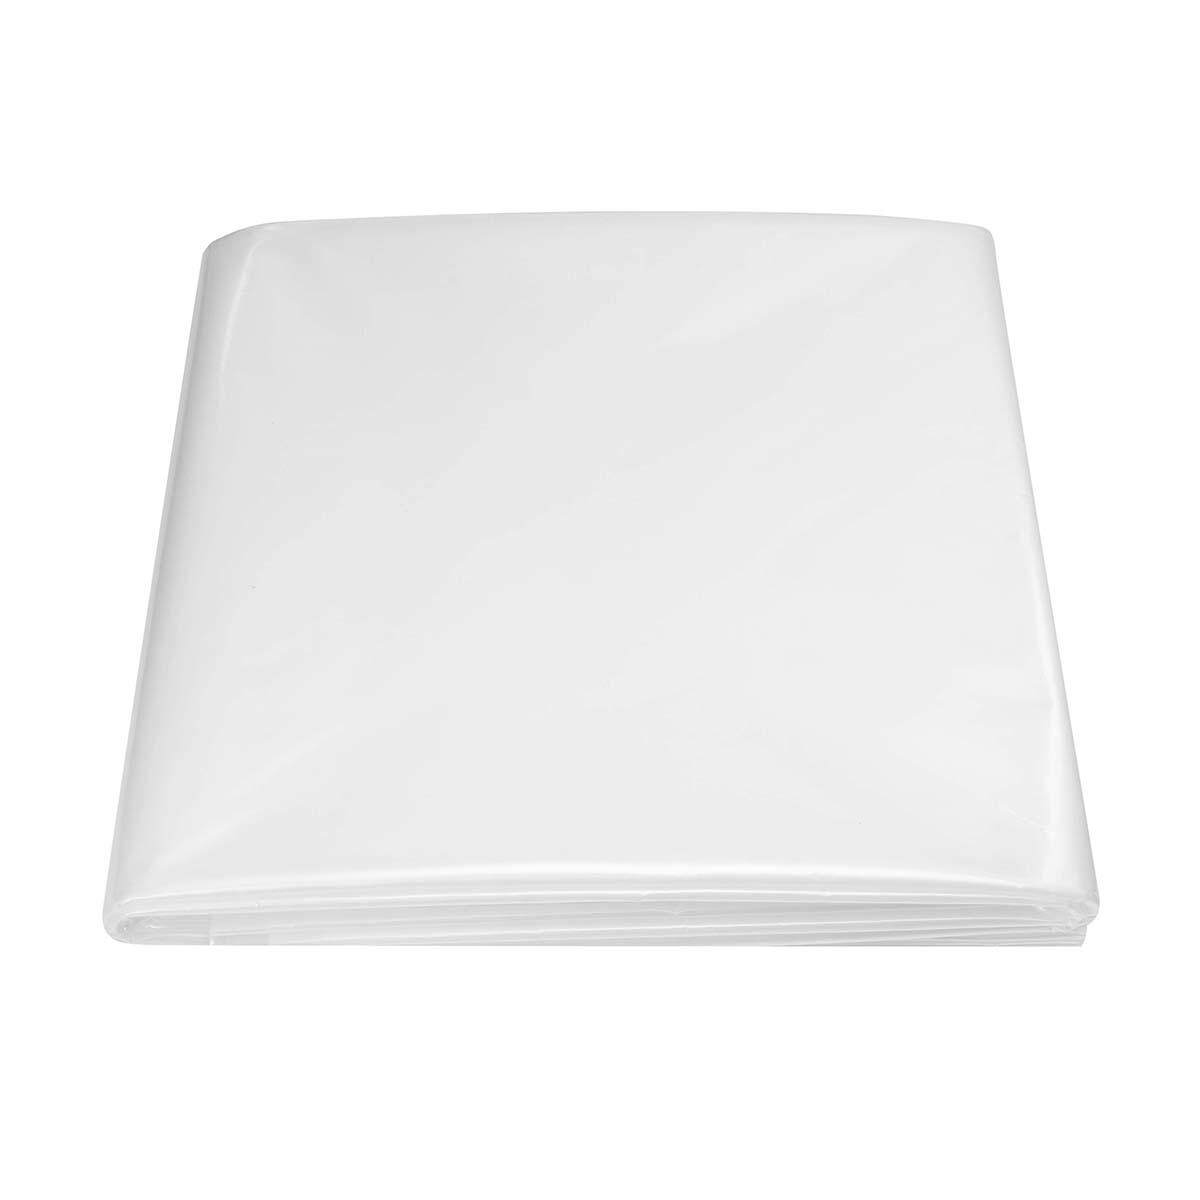 Pond Liner Special Offer White impermeable membrane geomembrane 10x9m - intl